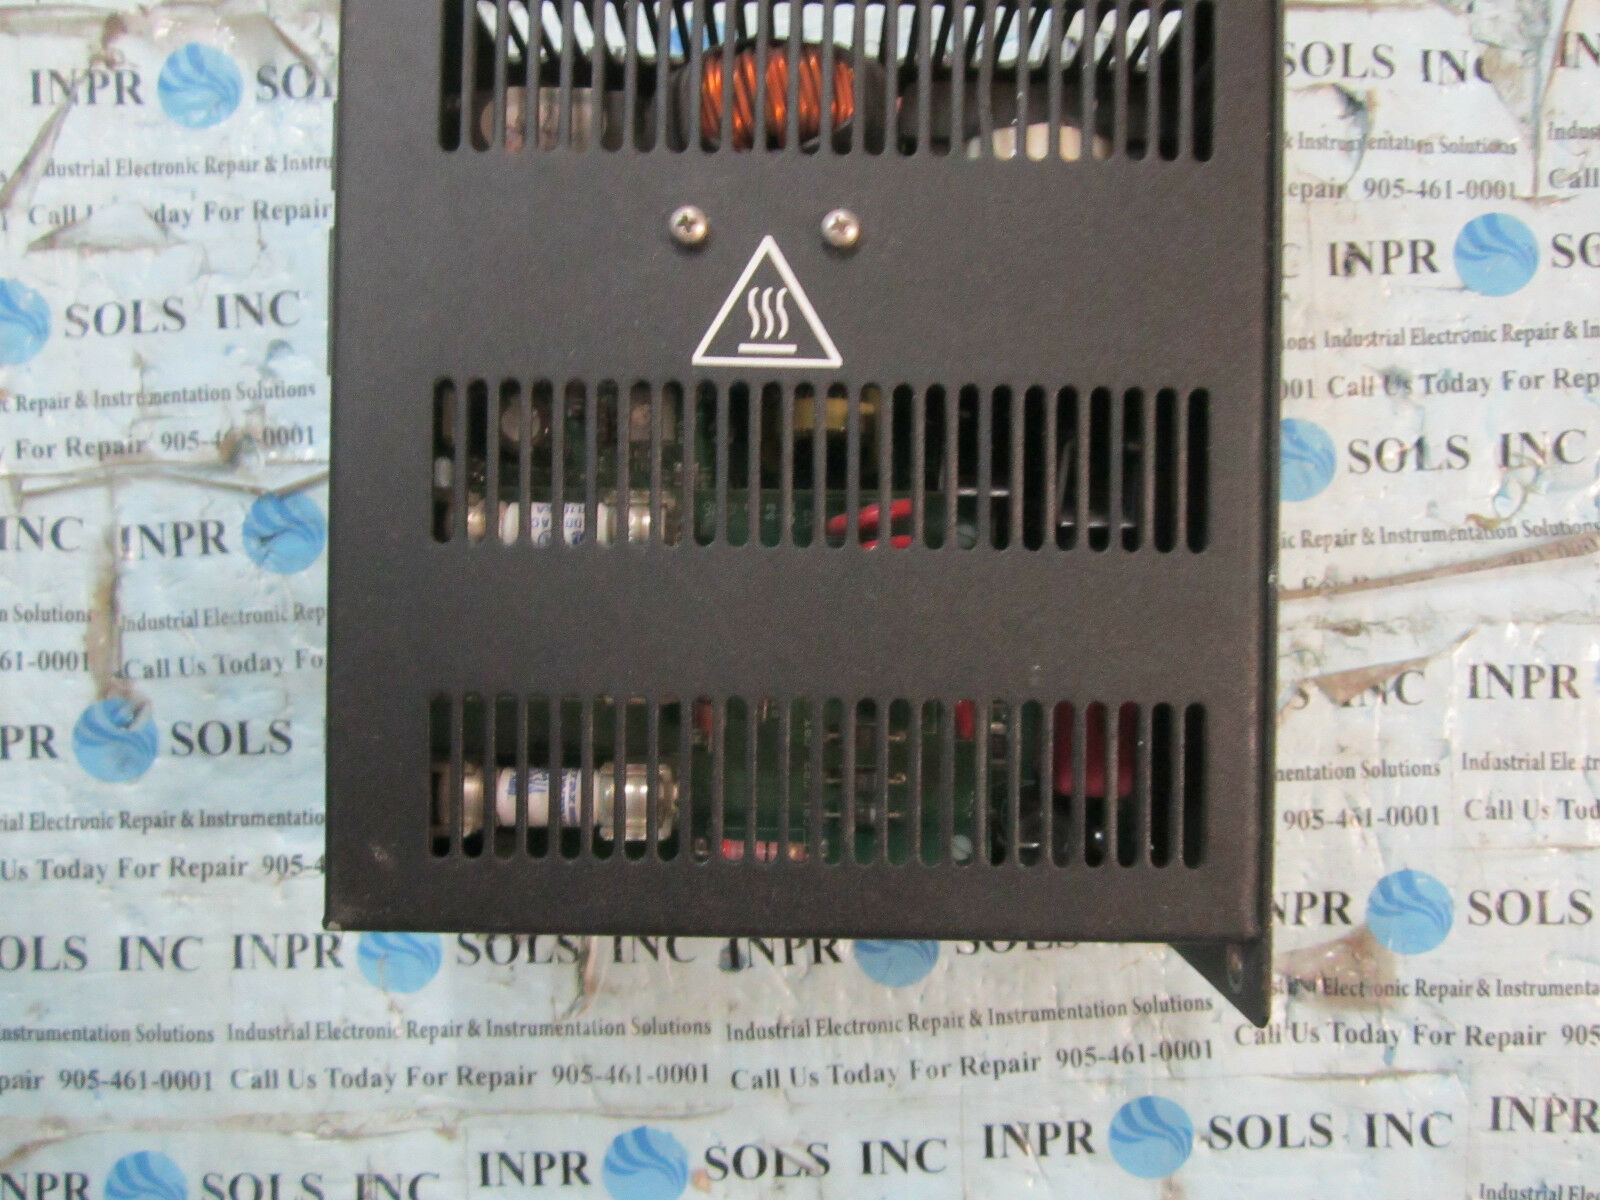 Eaton Pss55d Power Supply 55w 600v Circuit Board Repairs Industrial Electronics Variable